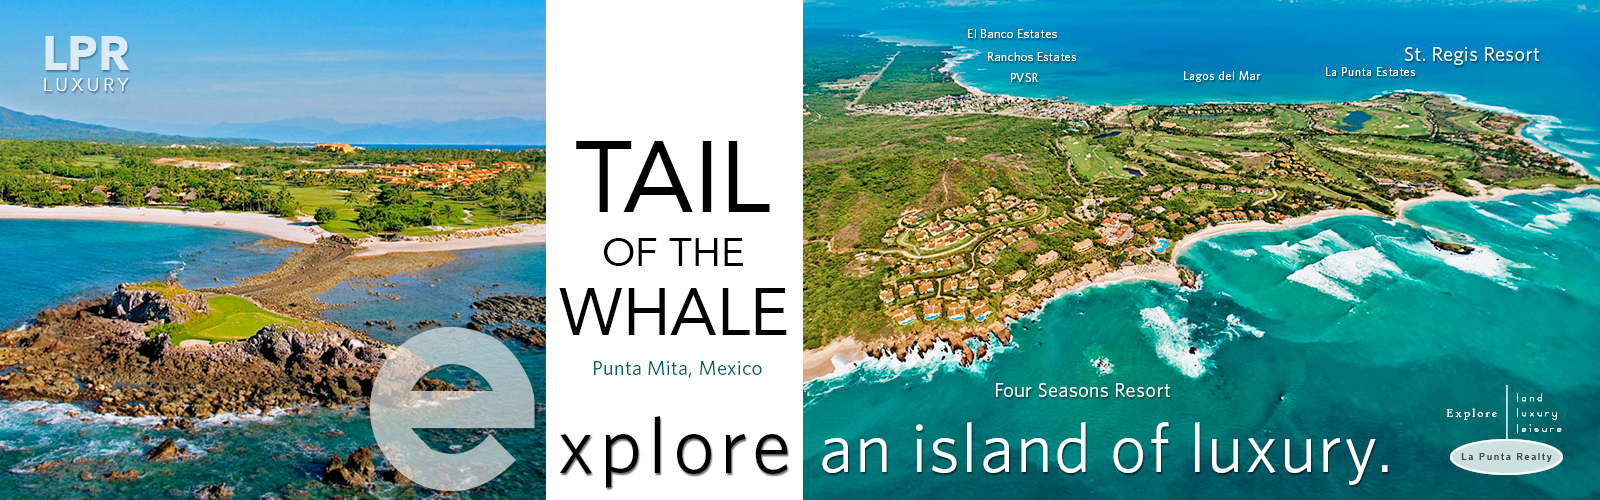 Discover an Island of Luxury at the Punta Mita Resort, Riviera Nayarit, Mexico